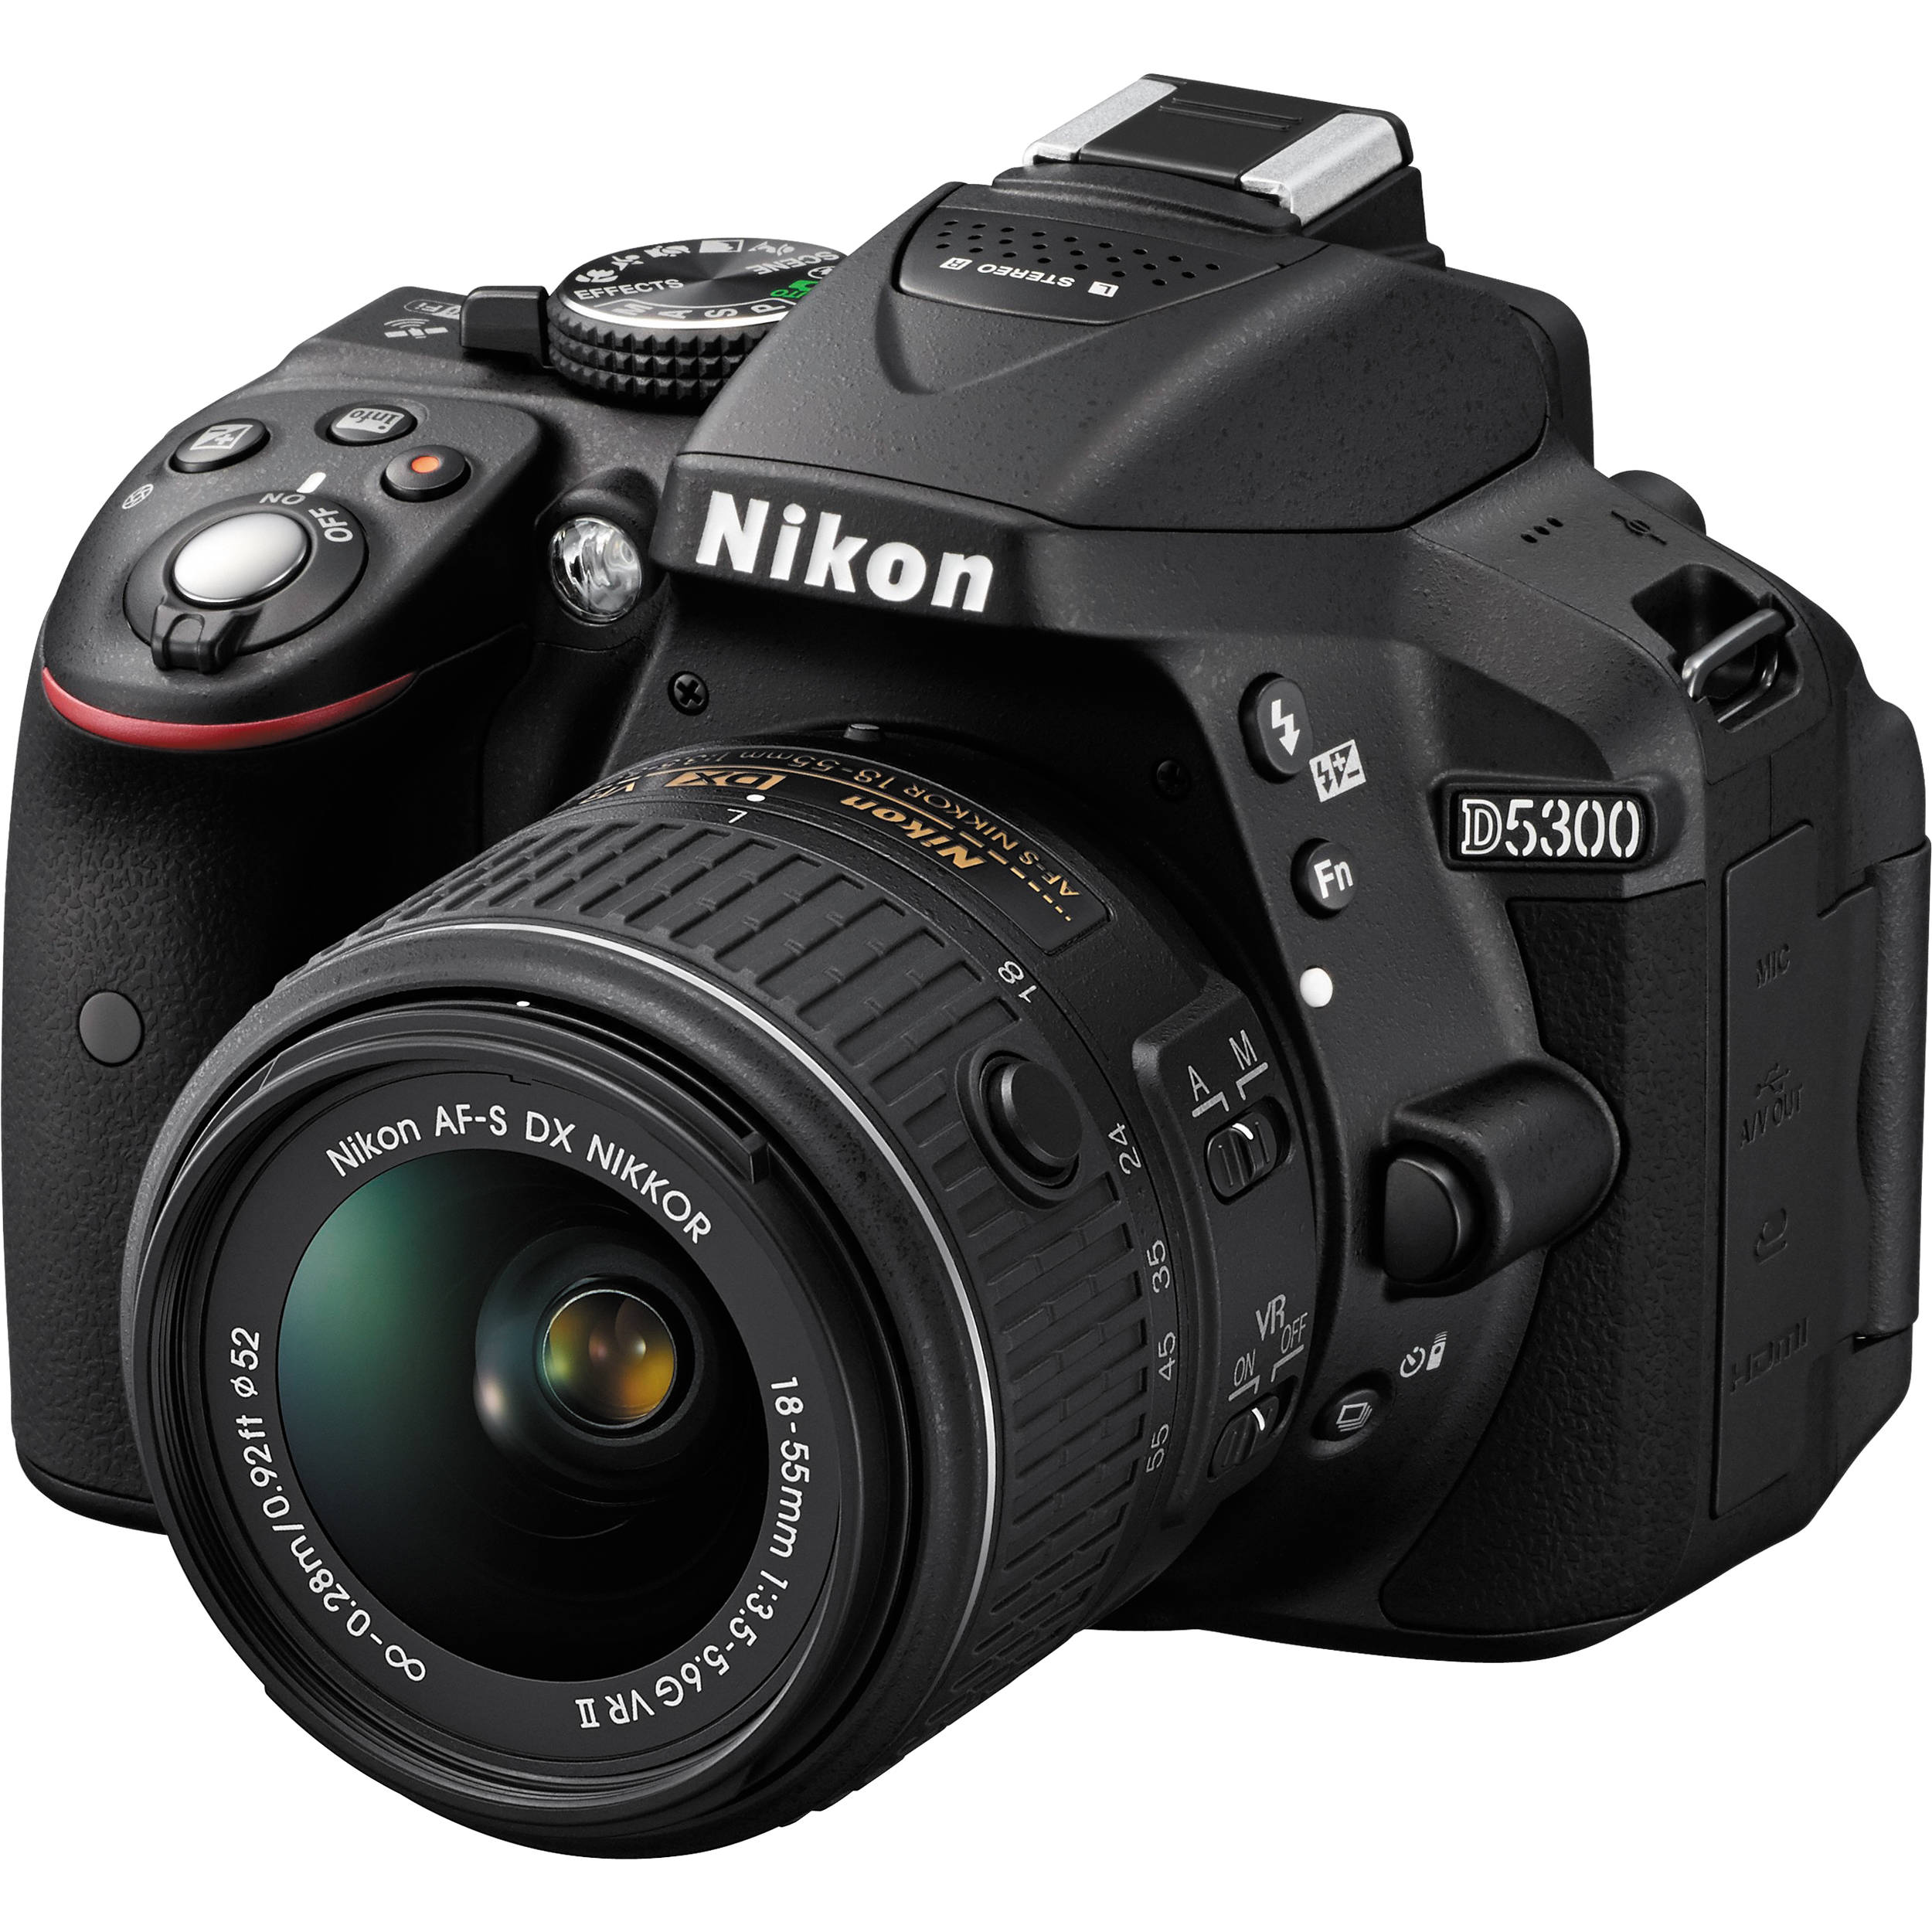 Nikon D5300, a great starter camera for videos and photography.